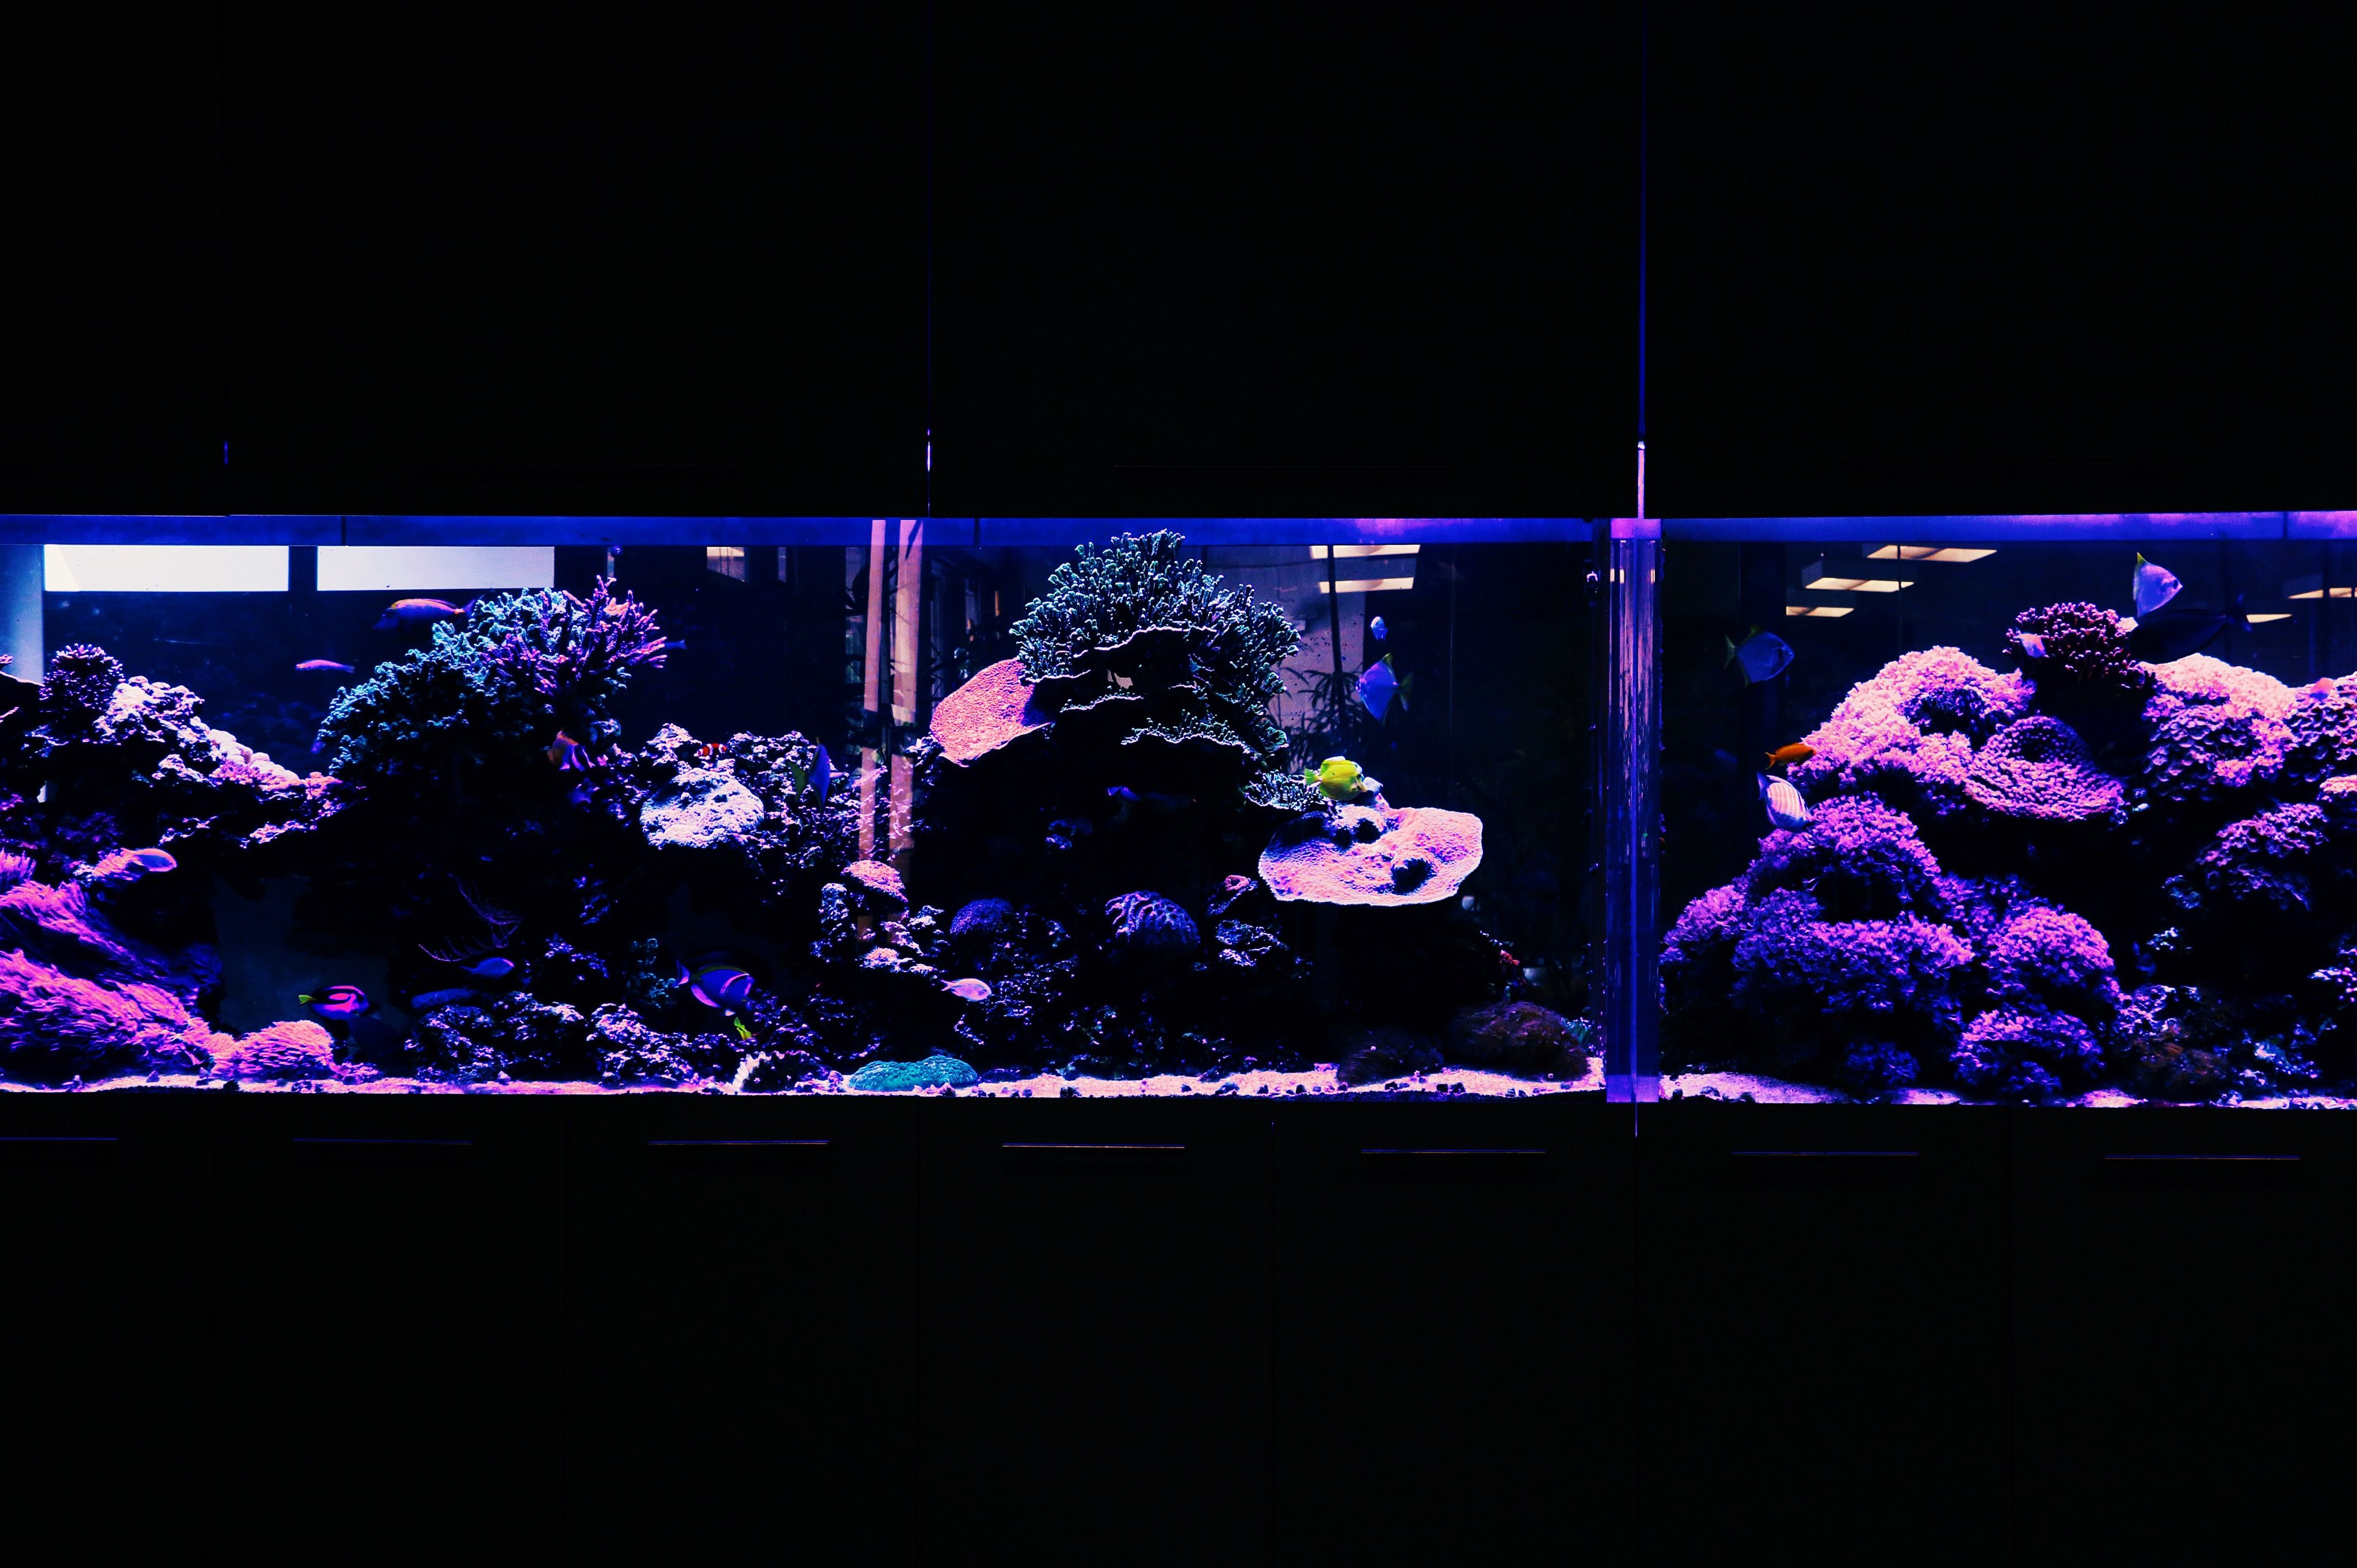 We have many different fish inhabiting this fish tank.